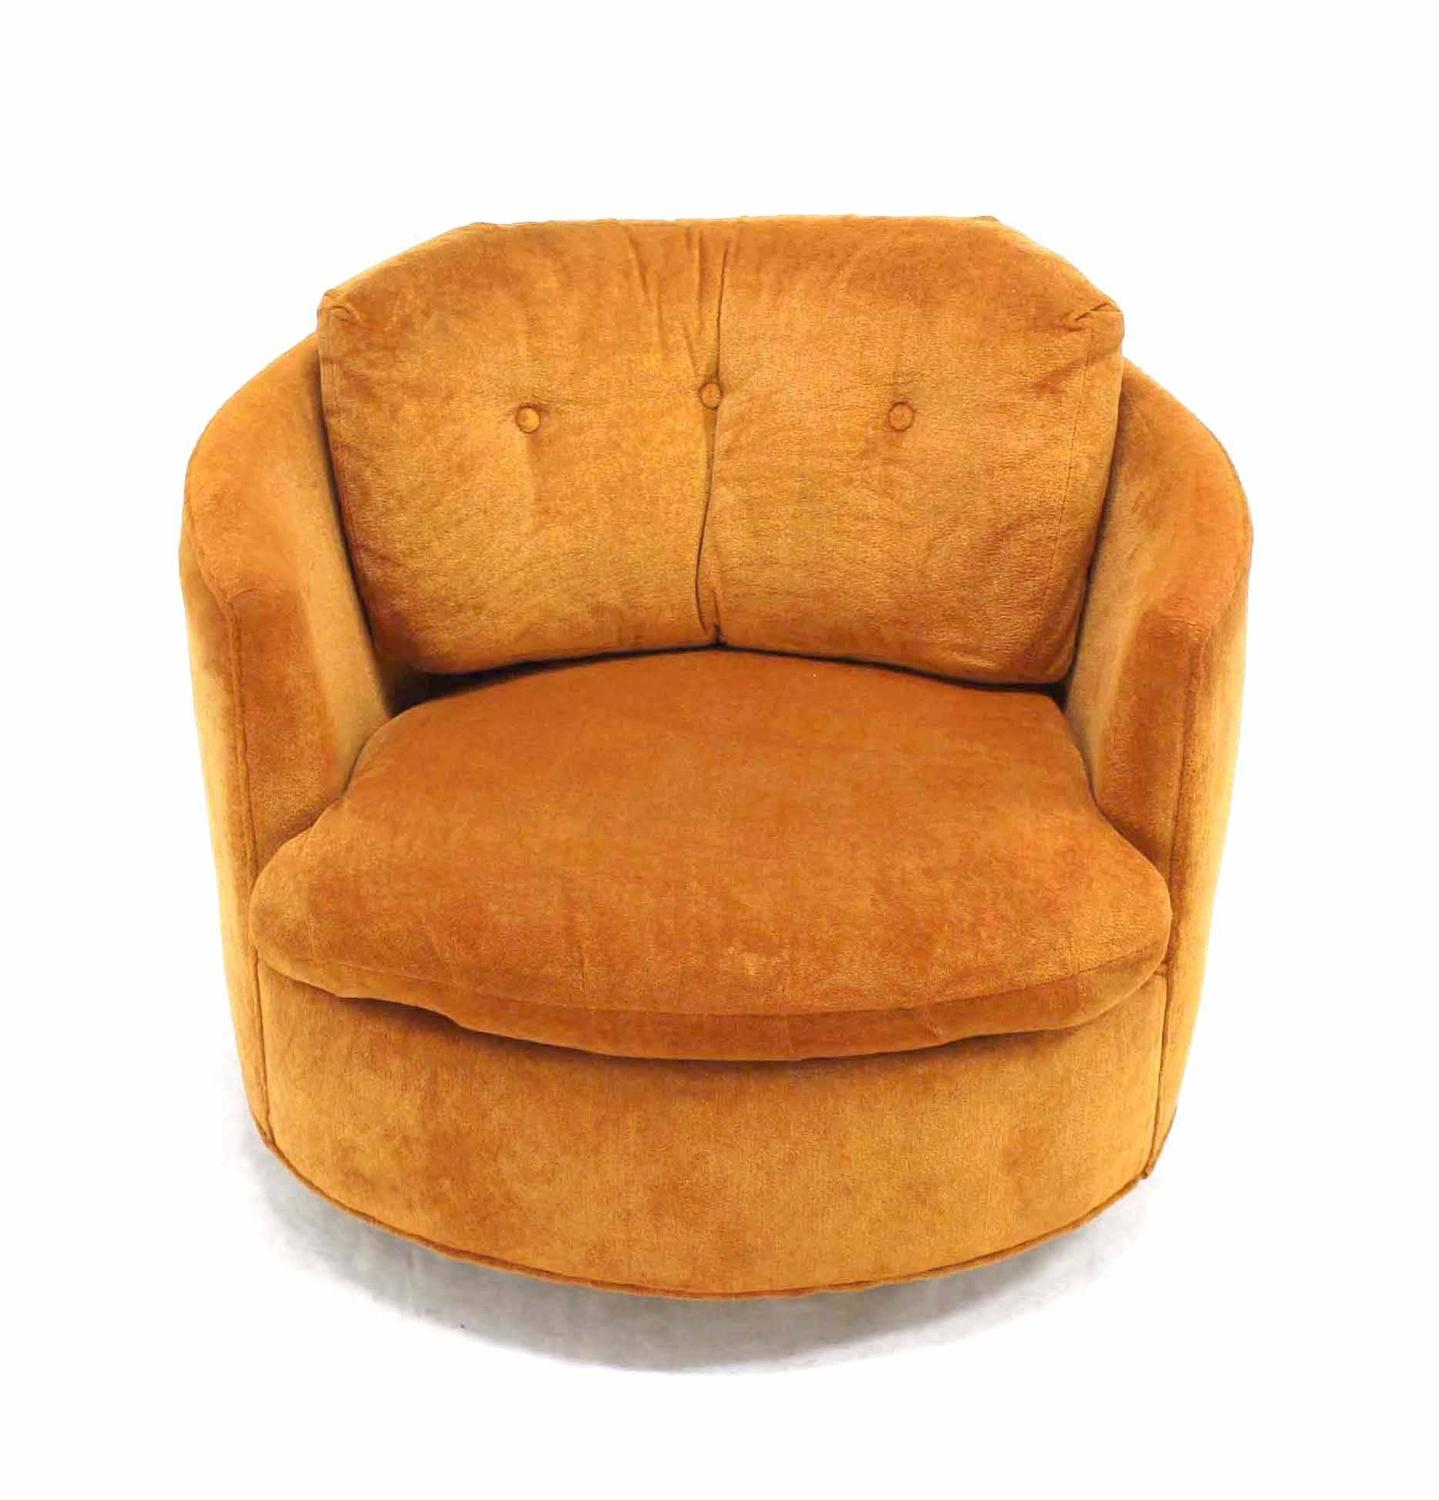 MidCentury Modern Round Barrel Back Swivel Lounge Chair